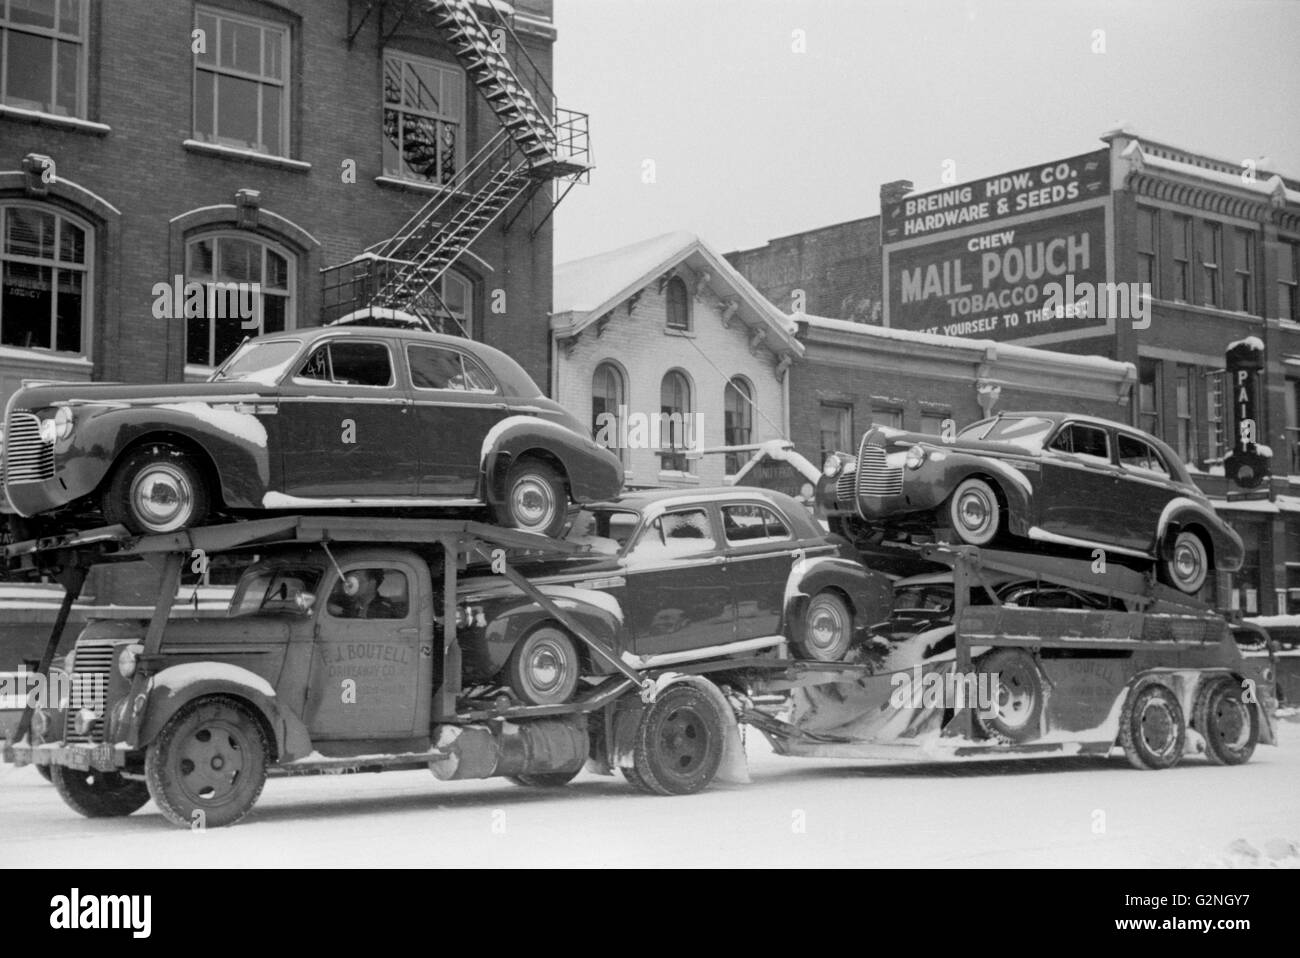 Transporte Auto, Chilicothe, Ohio, Estados Unidos, Arthur Rothstein para la Farm Security Administration (FSA), Imagen De Stock